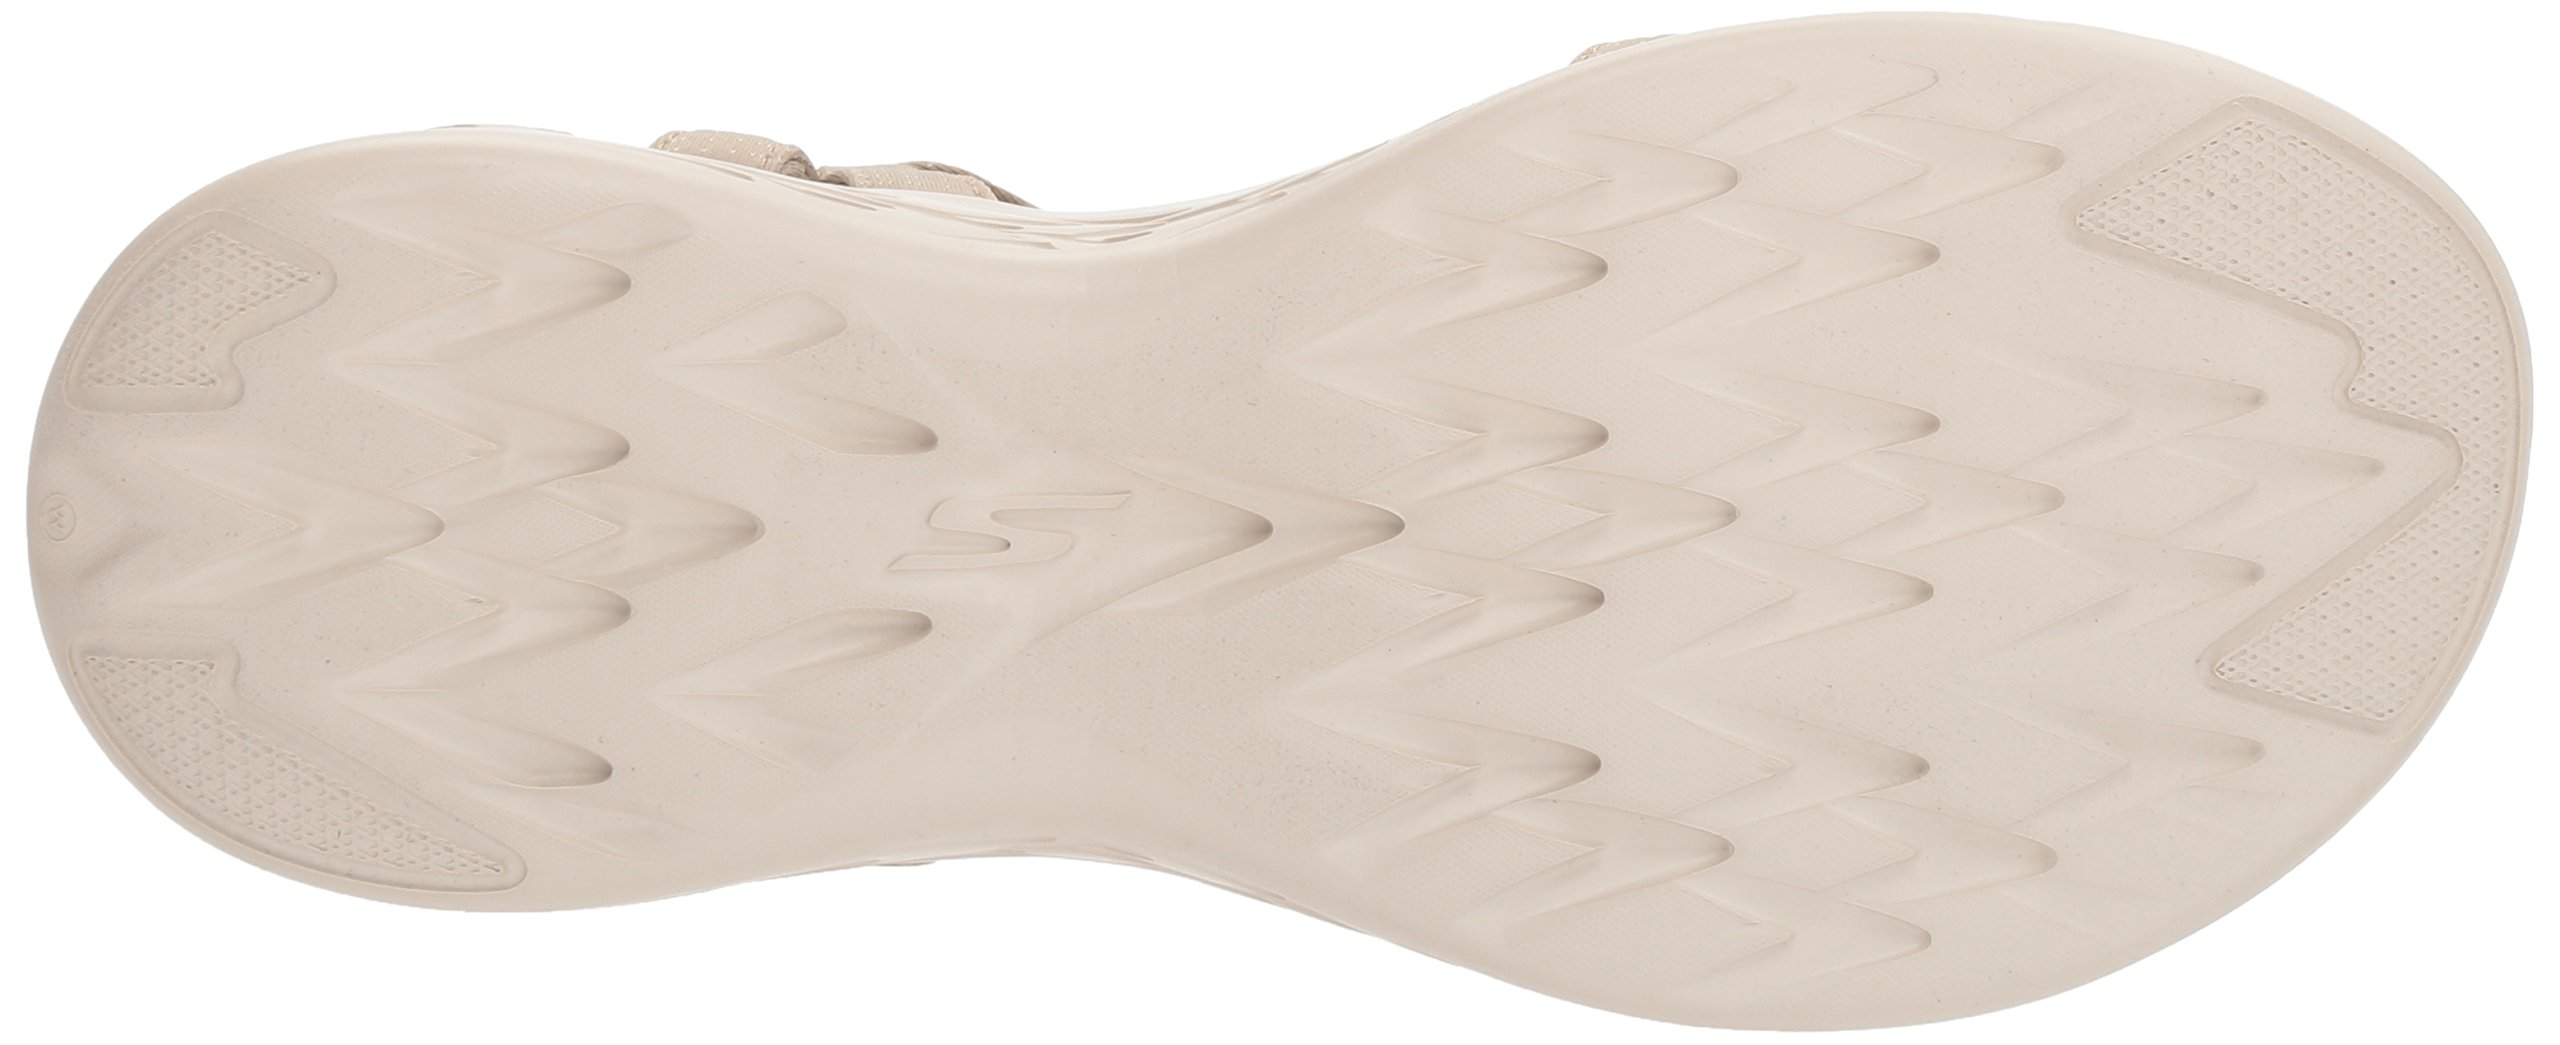 Skechers Performance Women's on-The-Go 600-Brilliancy Wide Sport Sandal,Natural,6 W US by Skechers (Image #3)